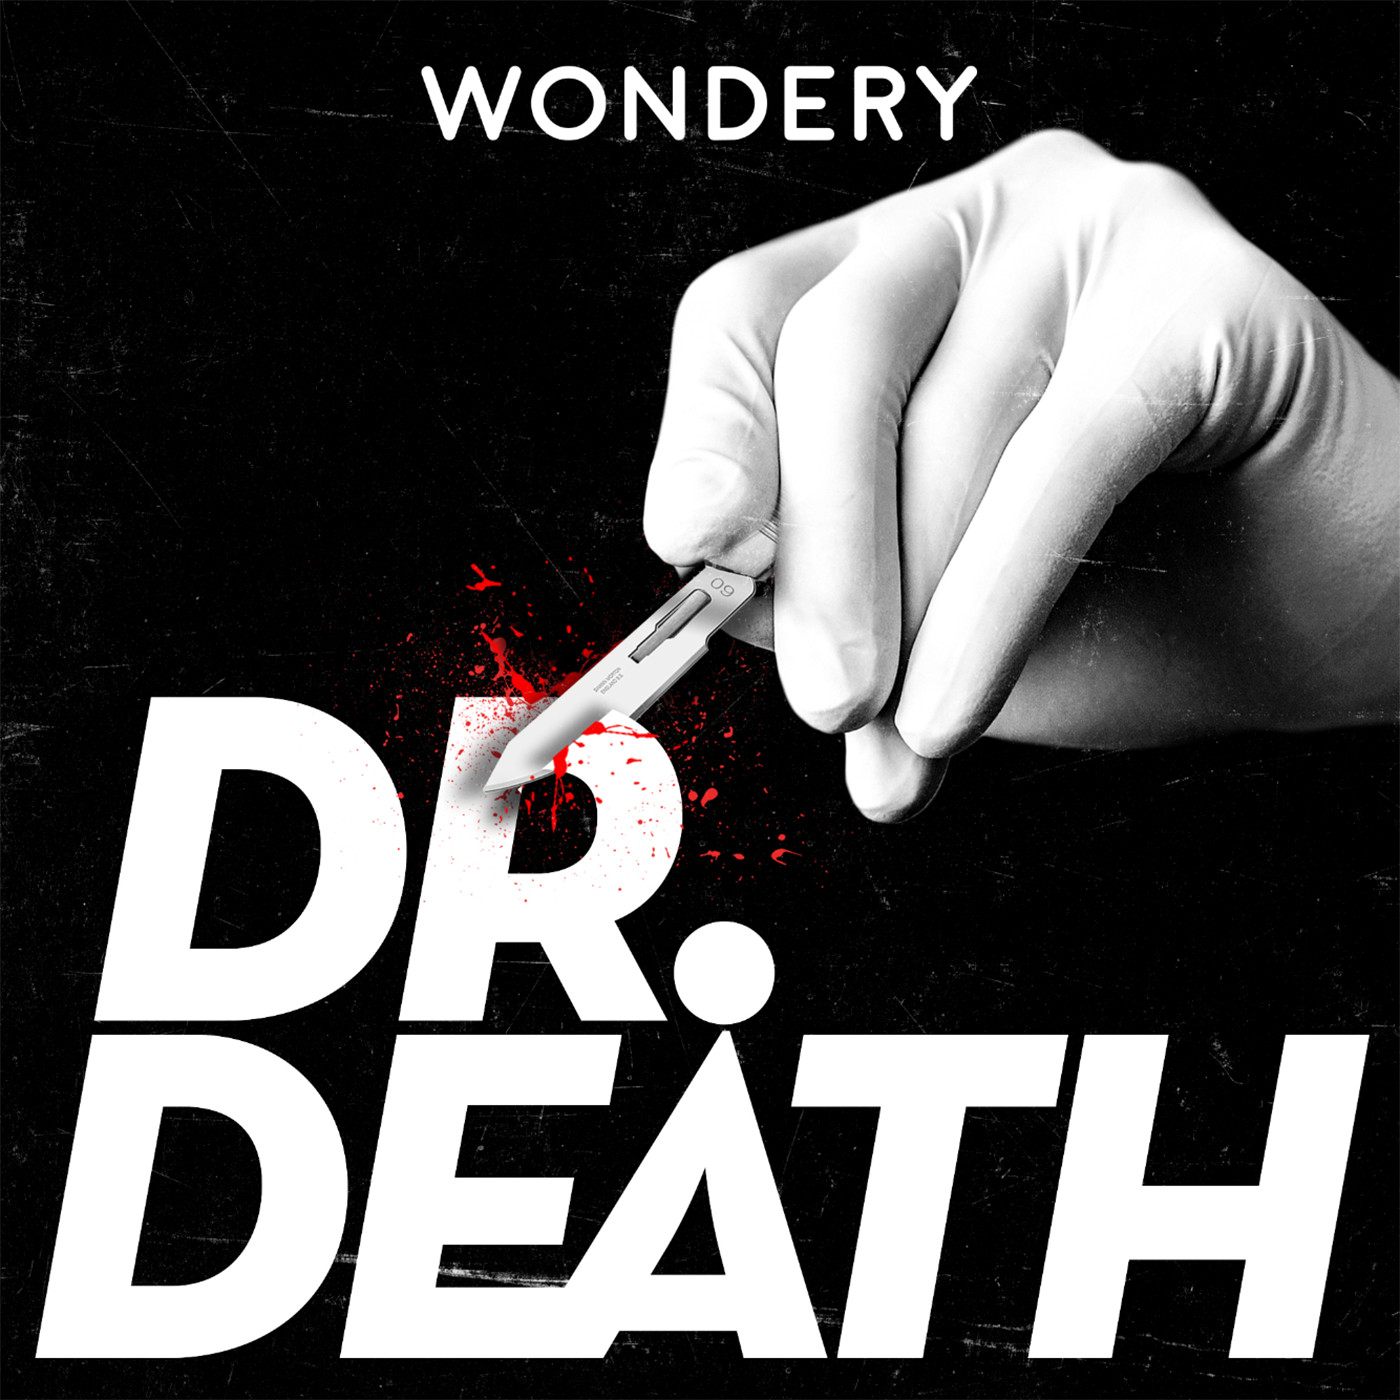 DR. DEATH - This is honestly one of the most insane stories I HAVE EVER HEARD. I listened to all the episodes on a 7 hour road trip and was actually yelling out loud WTF (I'm not one to normally scream at the radio lol). Dr. Death goes in depth into one of the most egregious stories I've ever heard of. The story follows Christopher Duntsch, a Texas surgeon who was convicted of gross malpractice after thirty-one of his patients were left seriously injured after he operated on them, and two patients died during his operation. The stories you hear in this podcast are heartbreaking and will have you SERIOUSLY questioning some of the practices in our medical system. Listen ASAP.